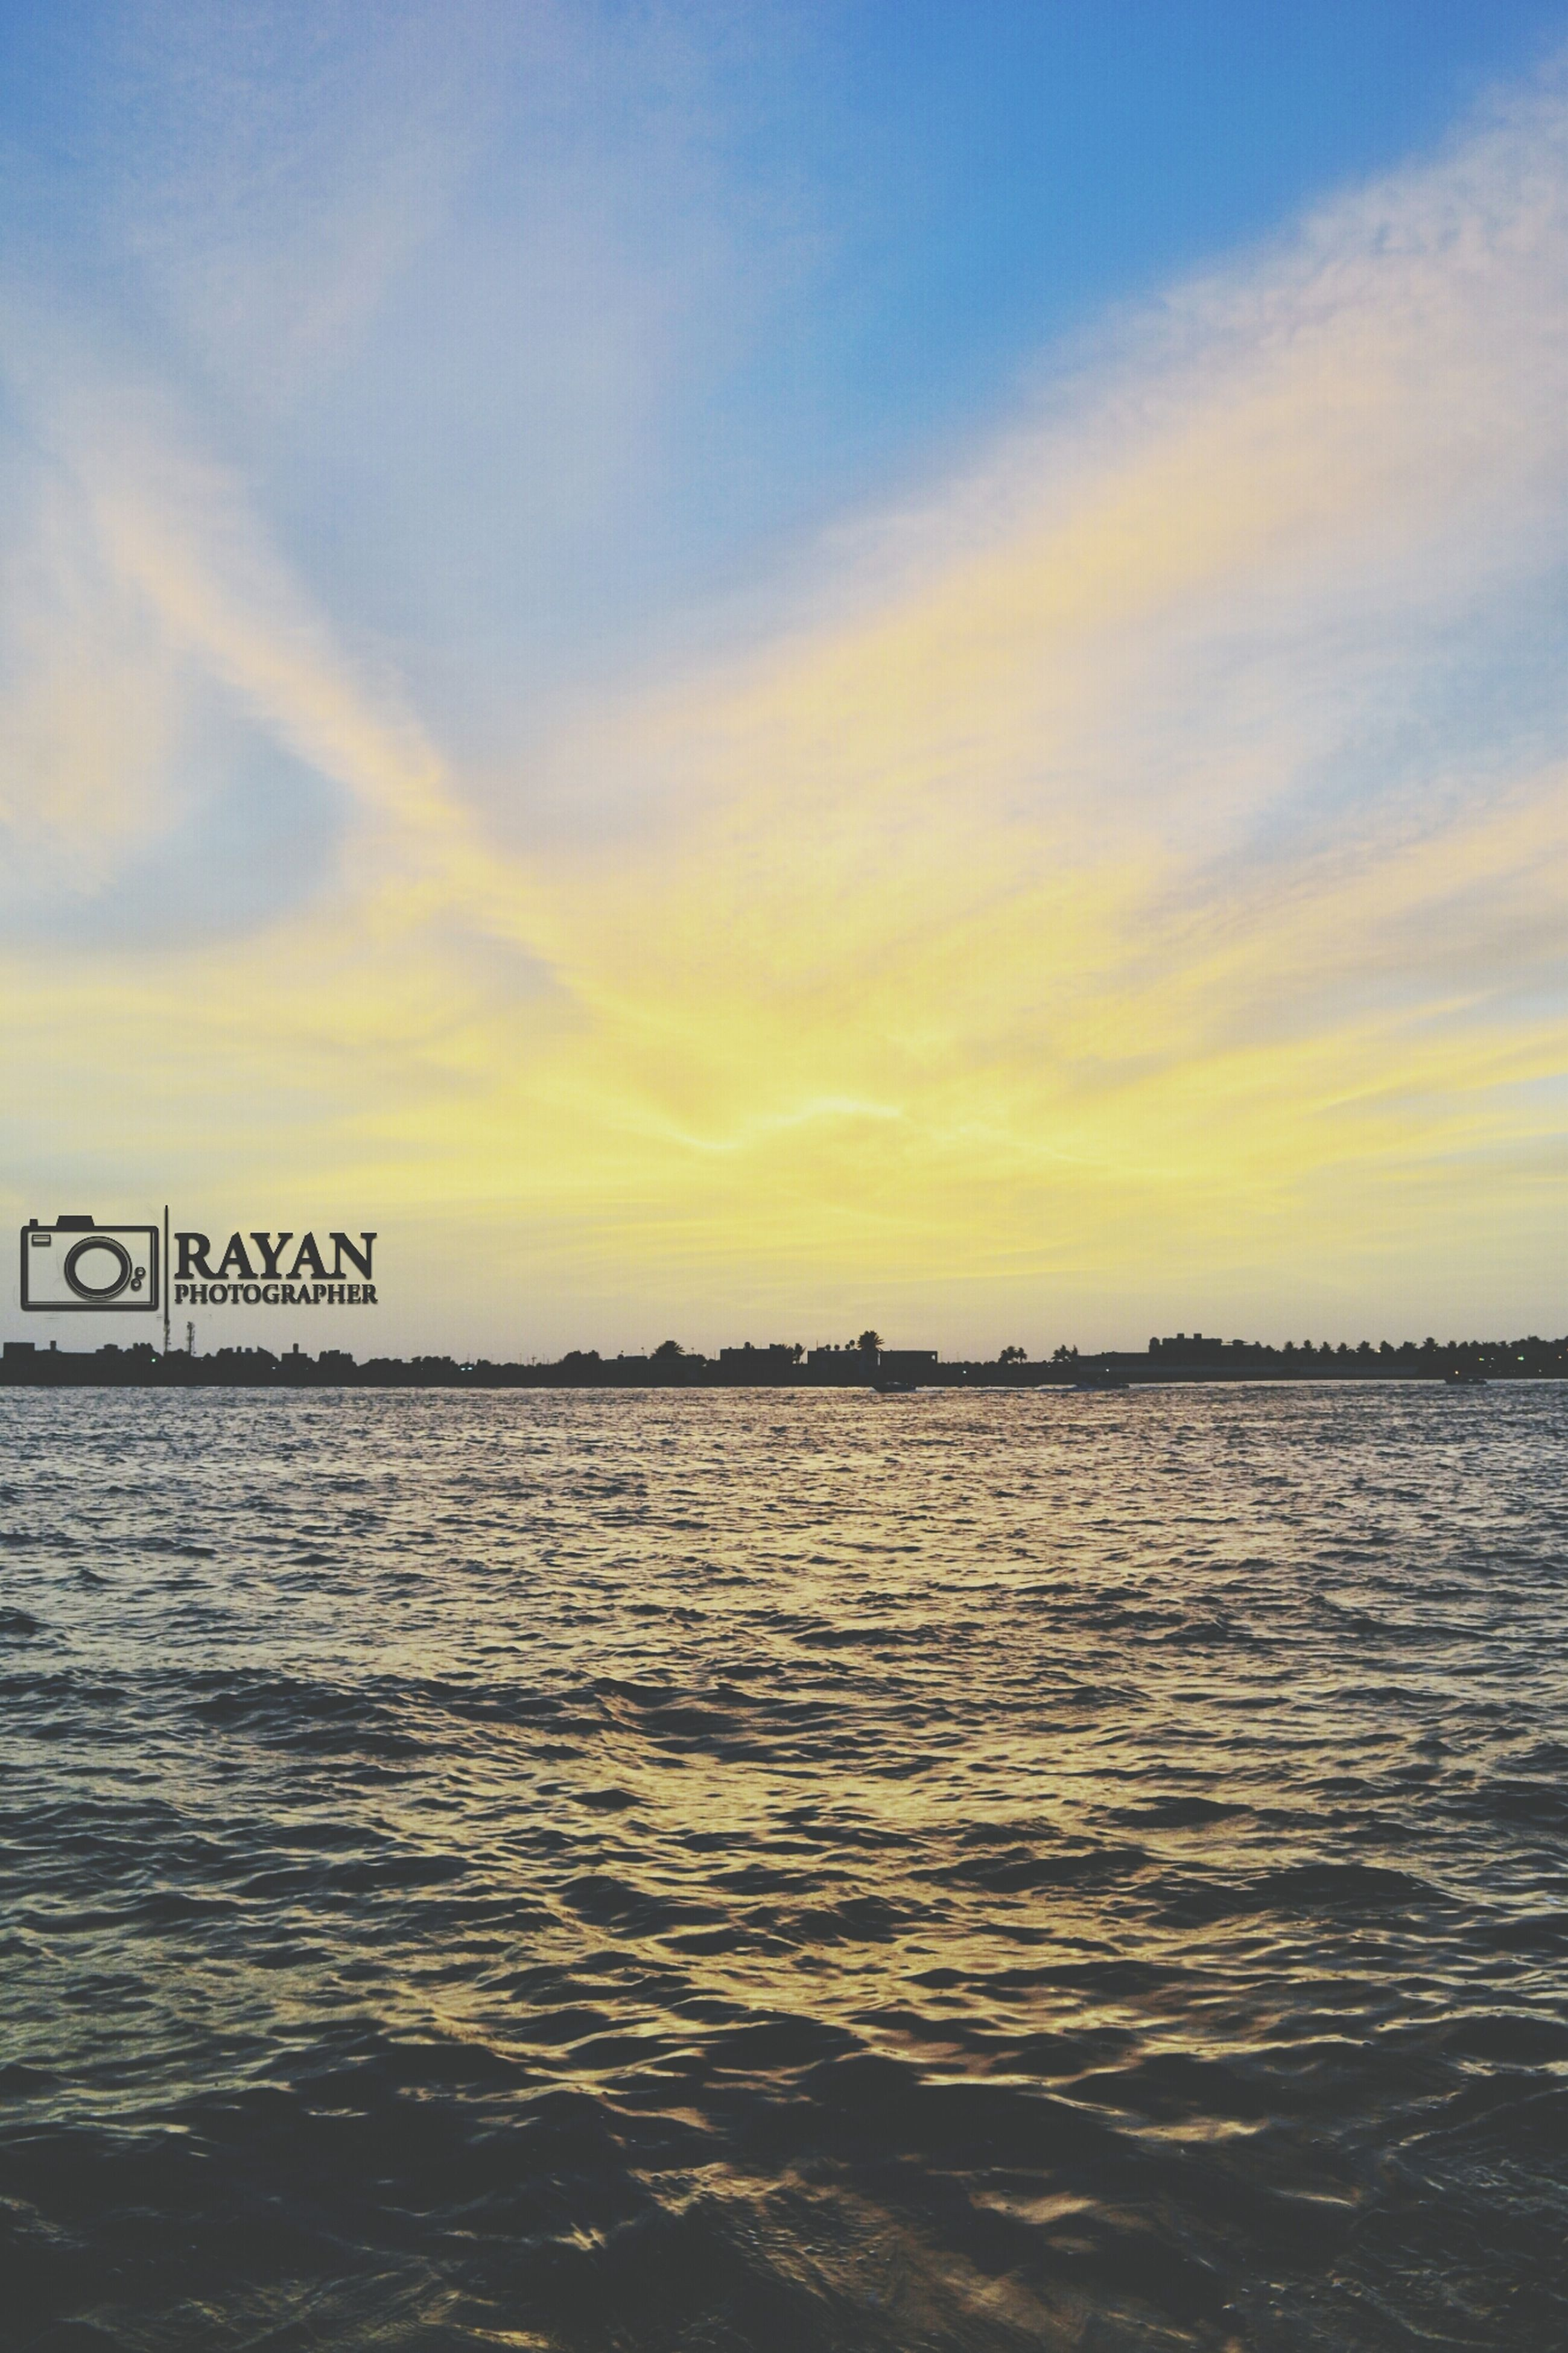 water, sky, sunset, scenics, tranquility, sea, tranquil scene, waterfront, beauty in nature, nature, cloud - sky, rippled, idyllic, outdoors, cloud, no people, text, lake, non-urban scene, calm